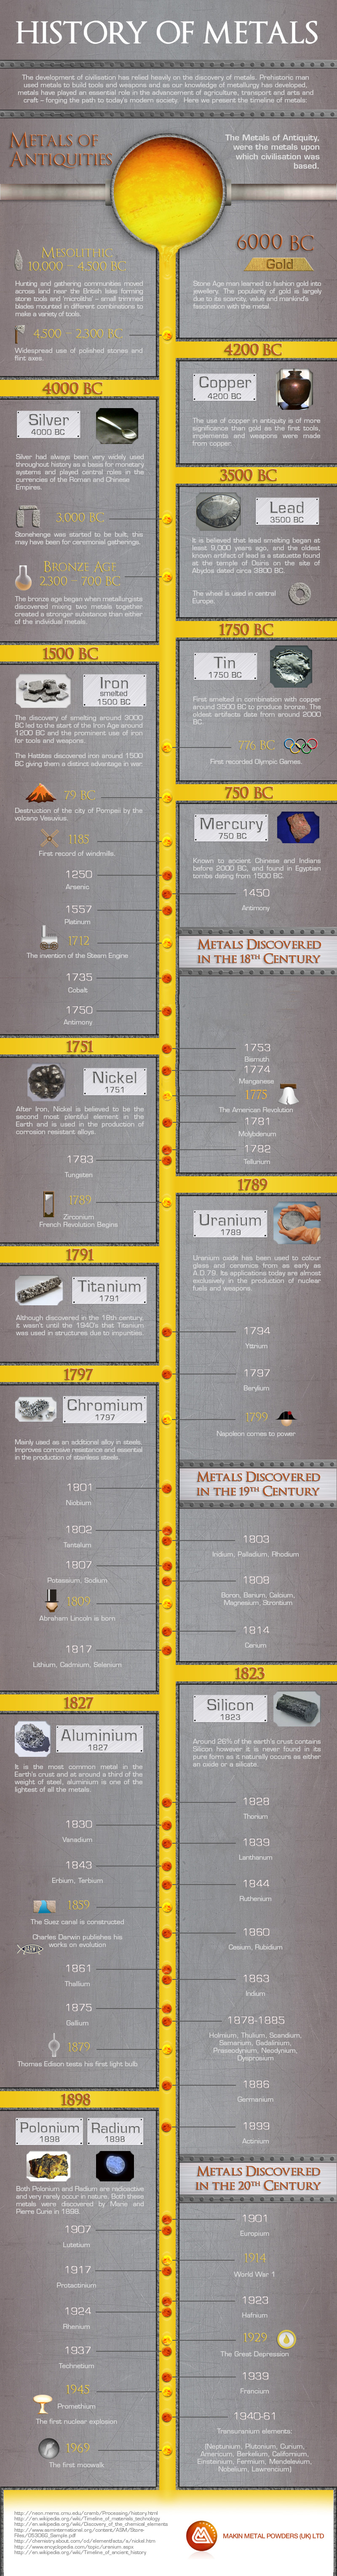 The History of Metals